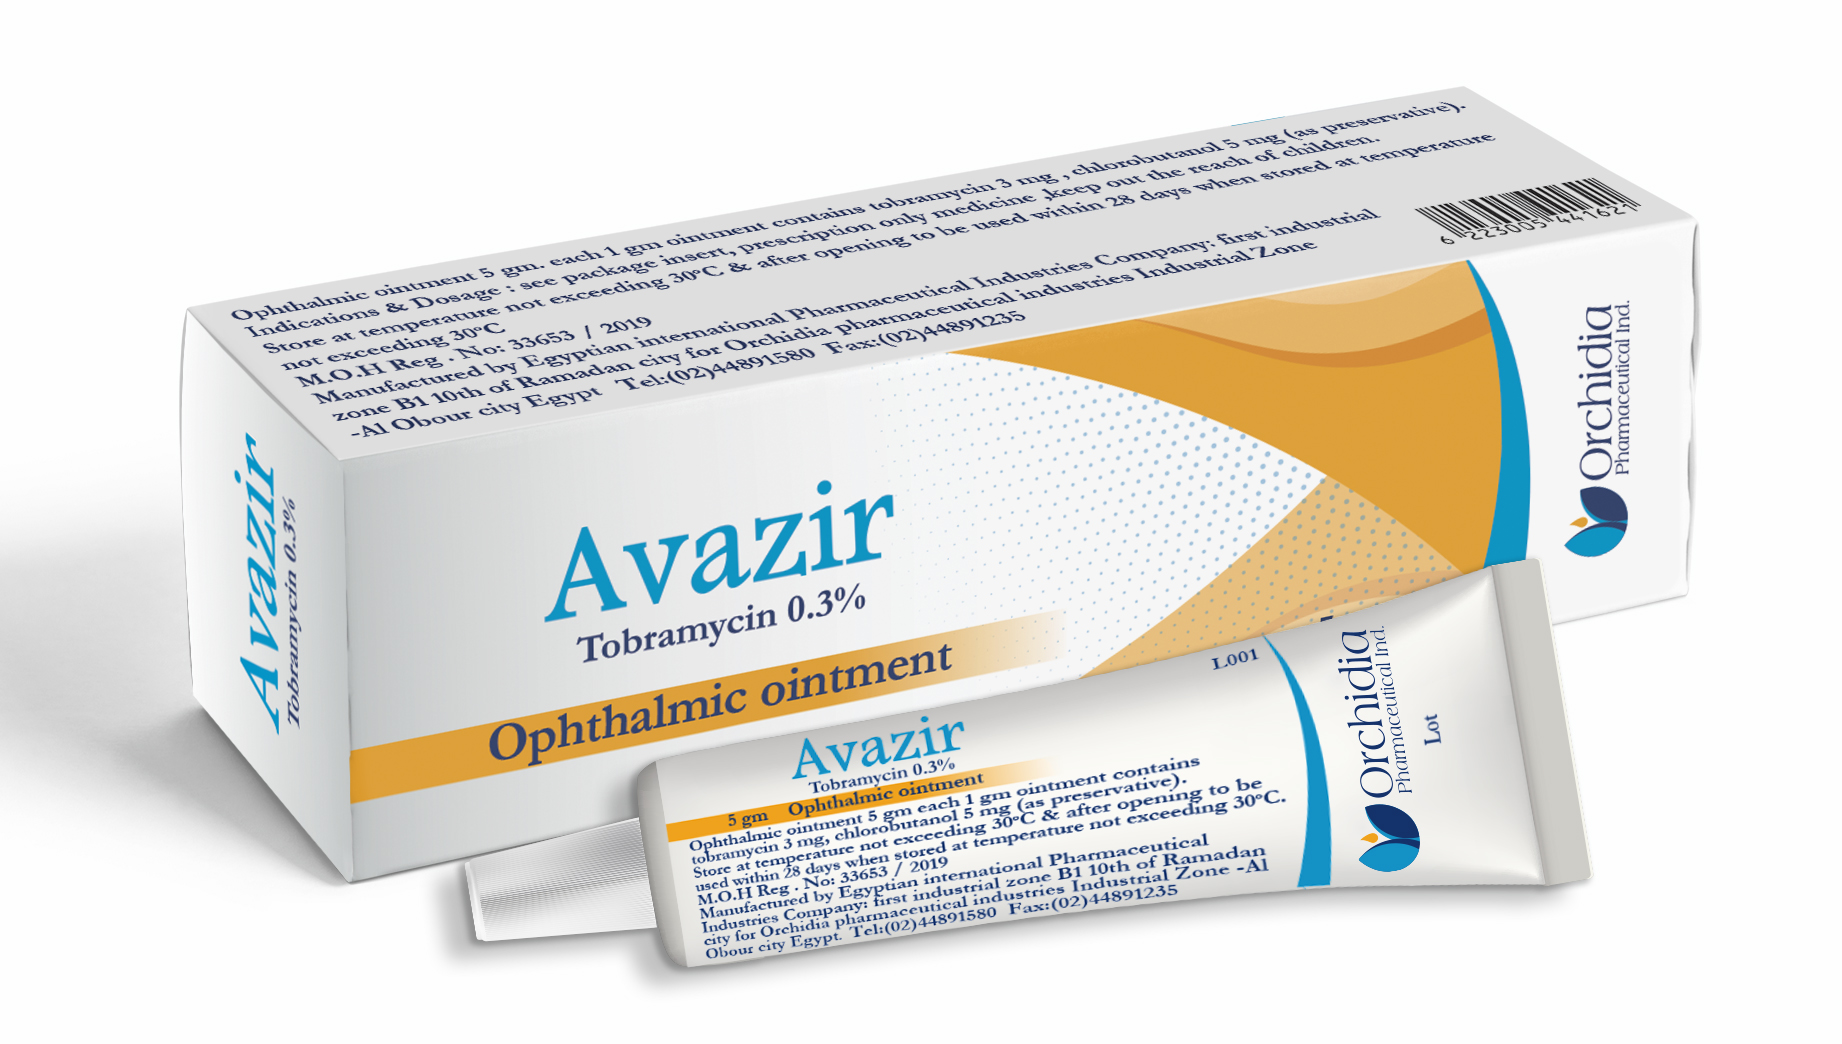 Avazir Ointment